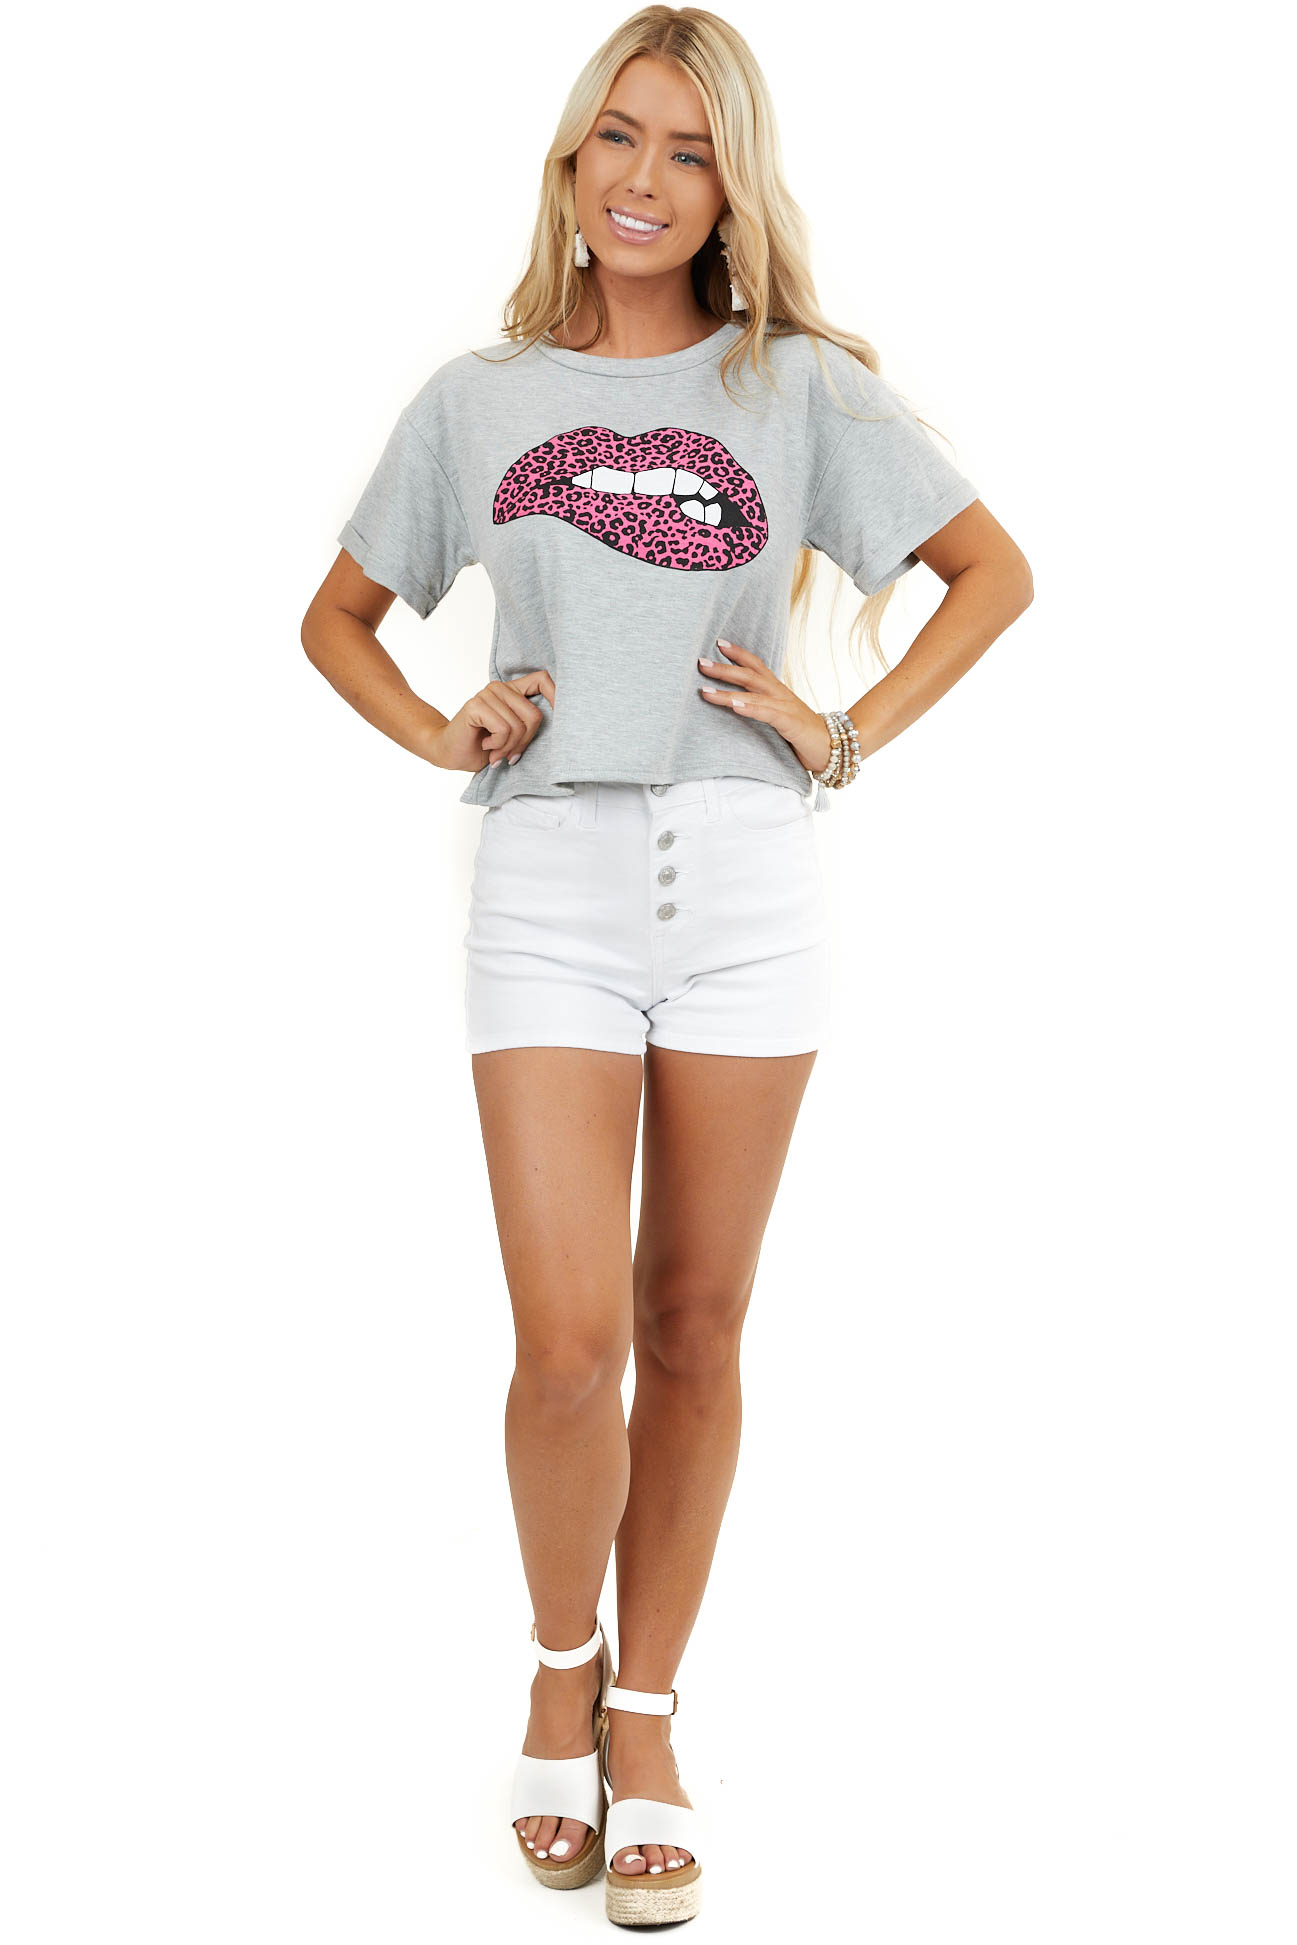 Heather Grey Crop Top with Leopard Print Lip Graphic